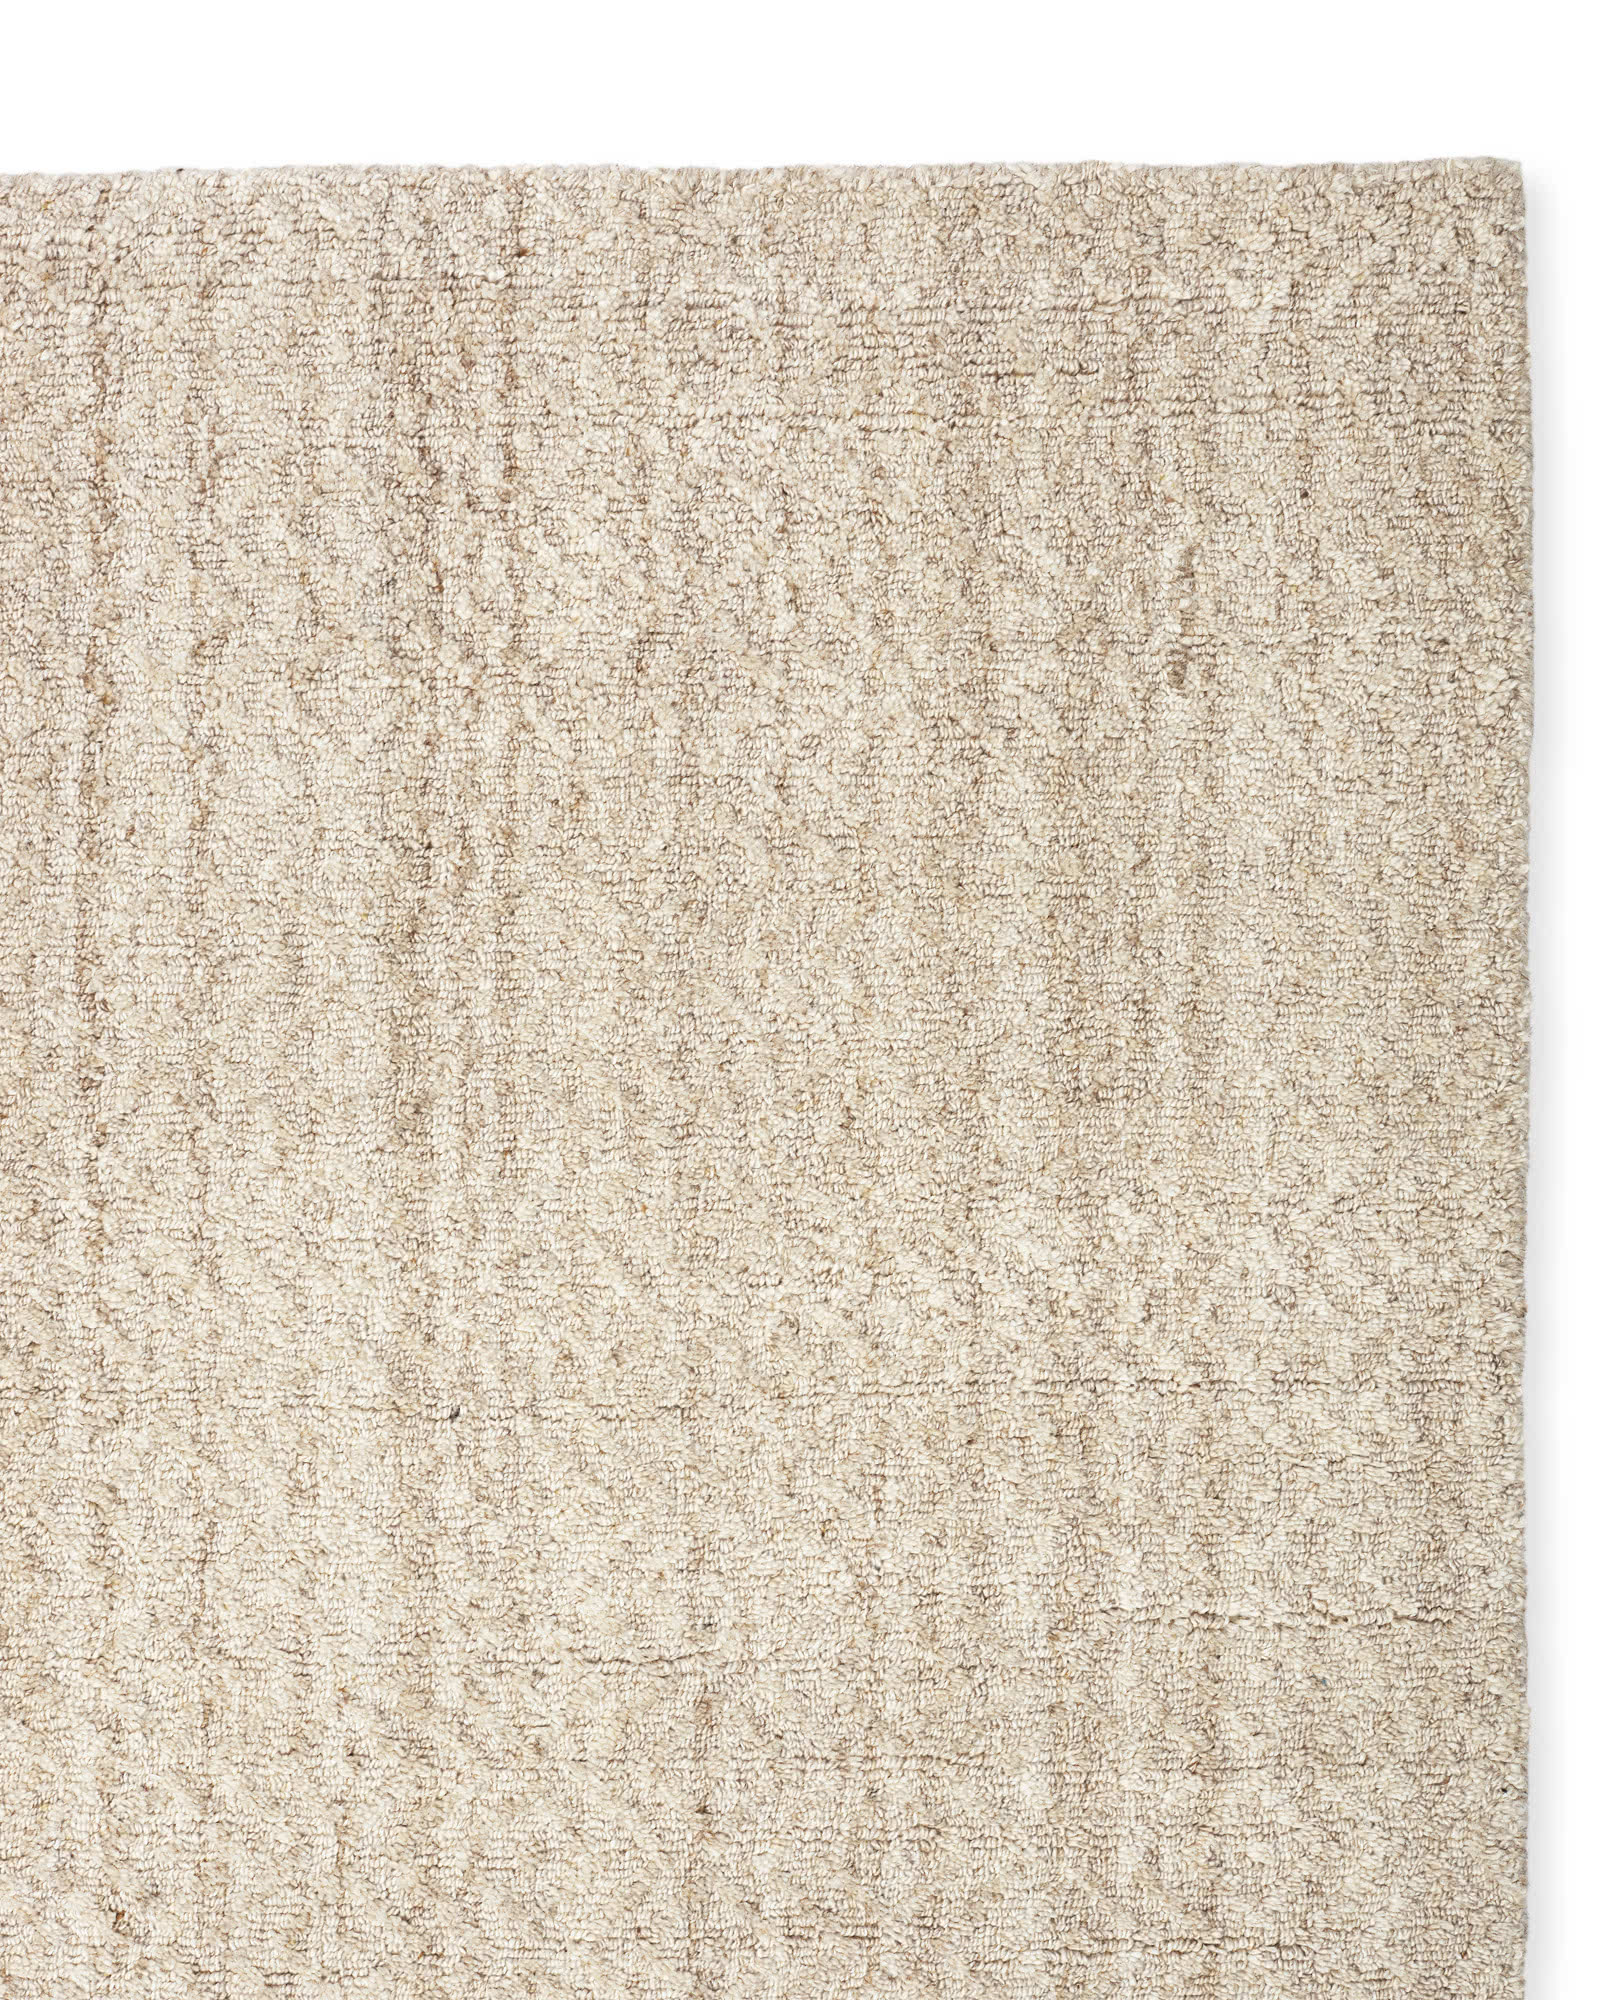 Rapallo Rug Swatch, Heathered Natural